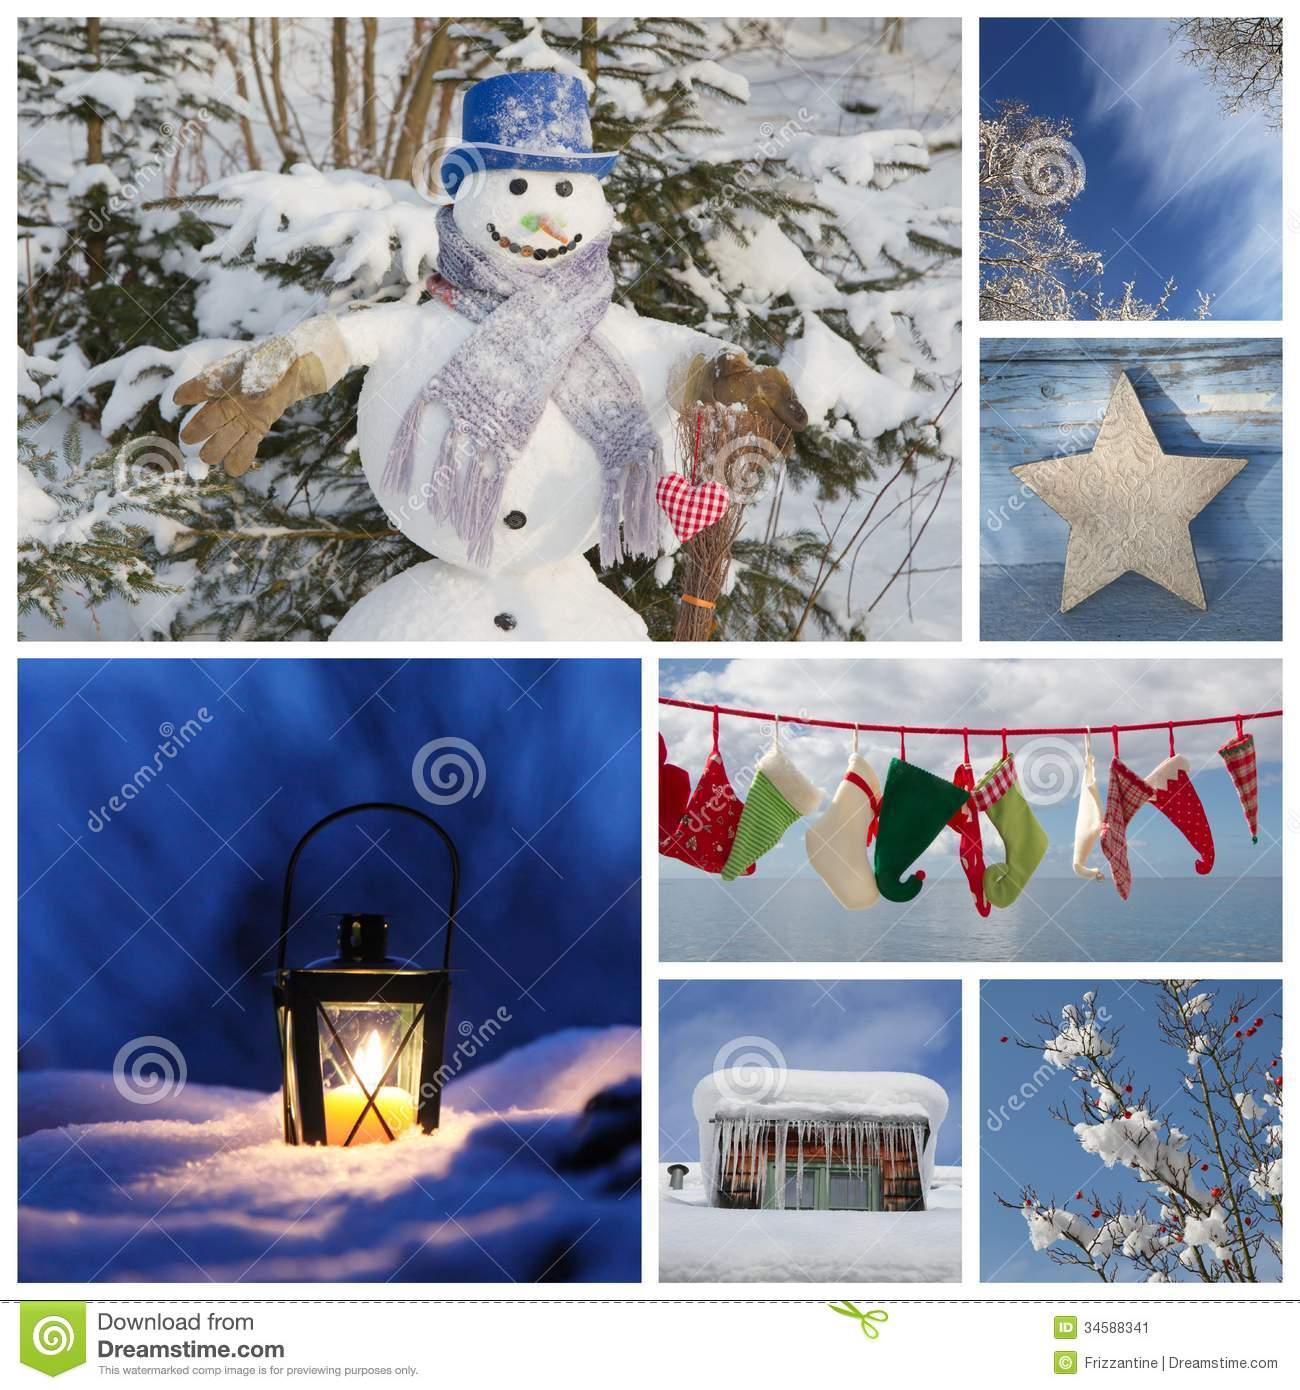 Christmas Collage In Blue - Ideas For Decoration Or A ...